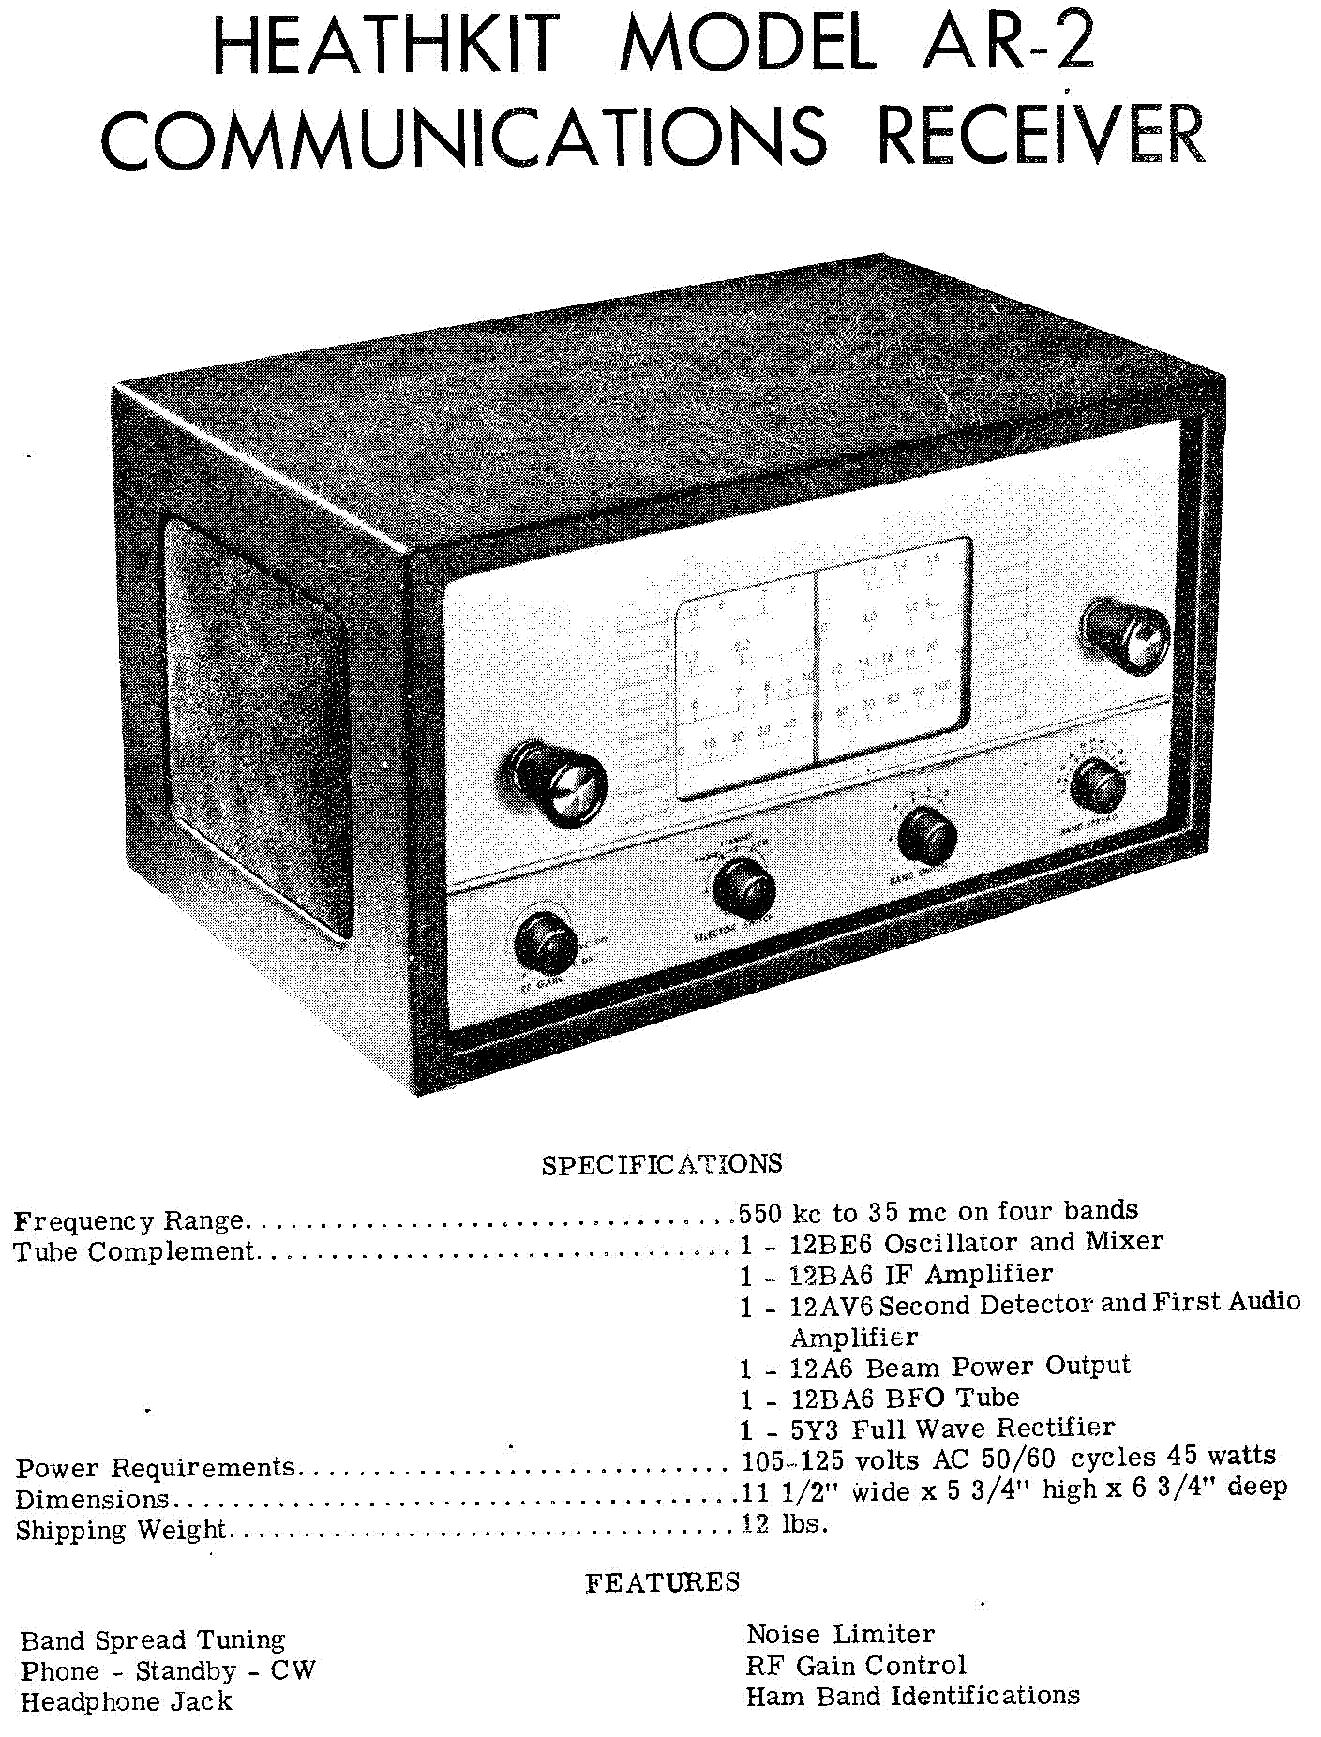 HEATHKIT HW-104 100W TRANSCEIVER ECONOMY VERSION OF SB-104